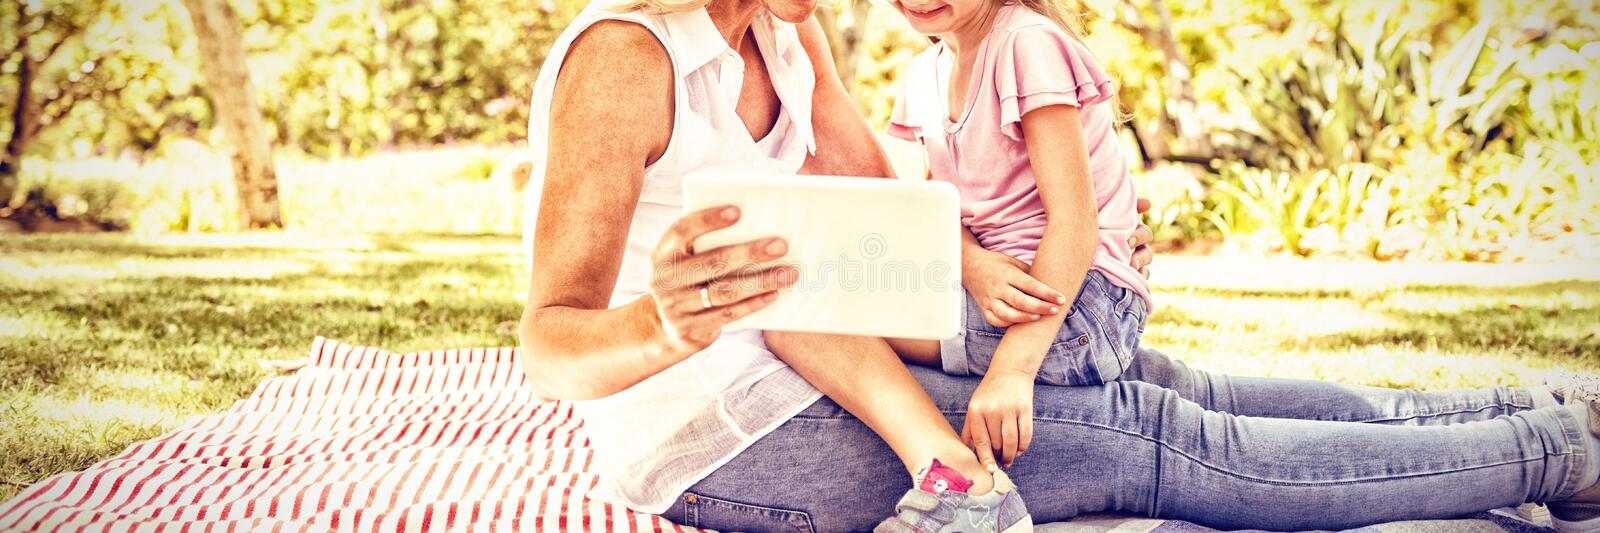 Happy mother and daughter using digital tablet in park royalty free stock photos